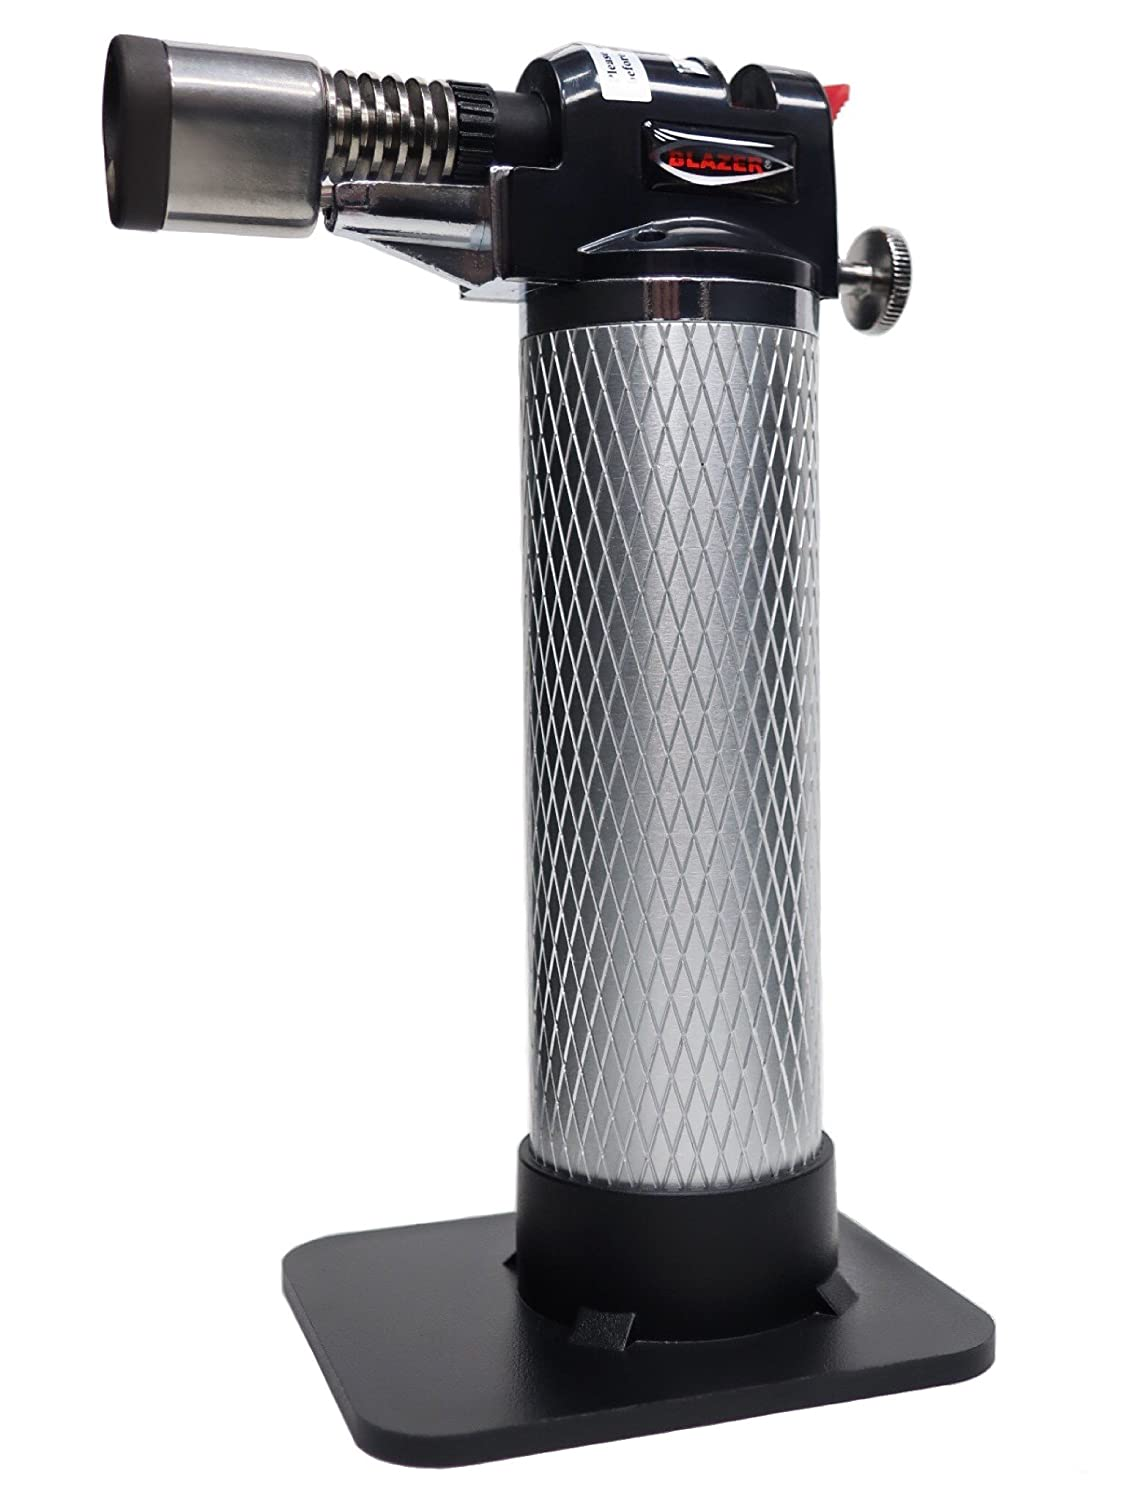 Blazer GB4001 Stingray Butane Torch, Black